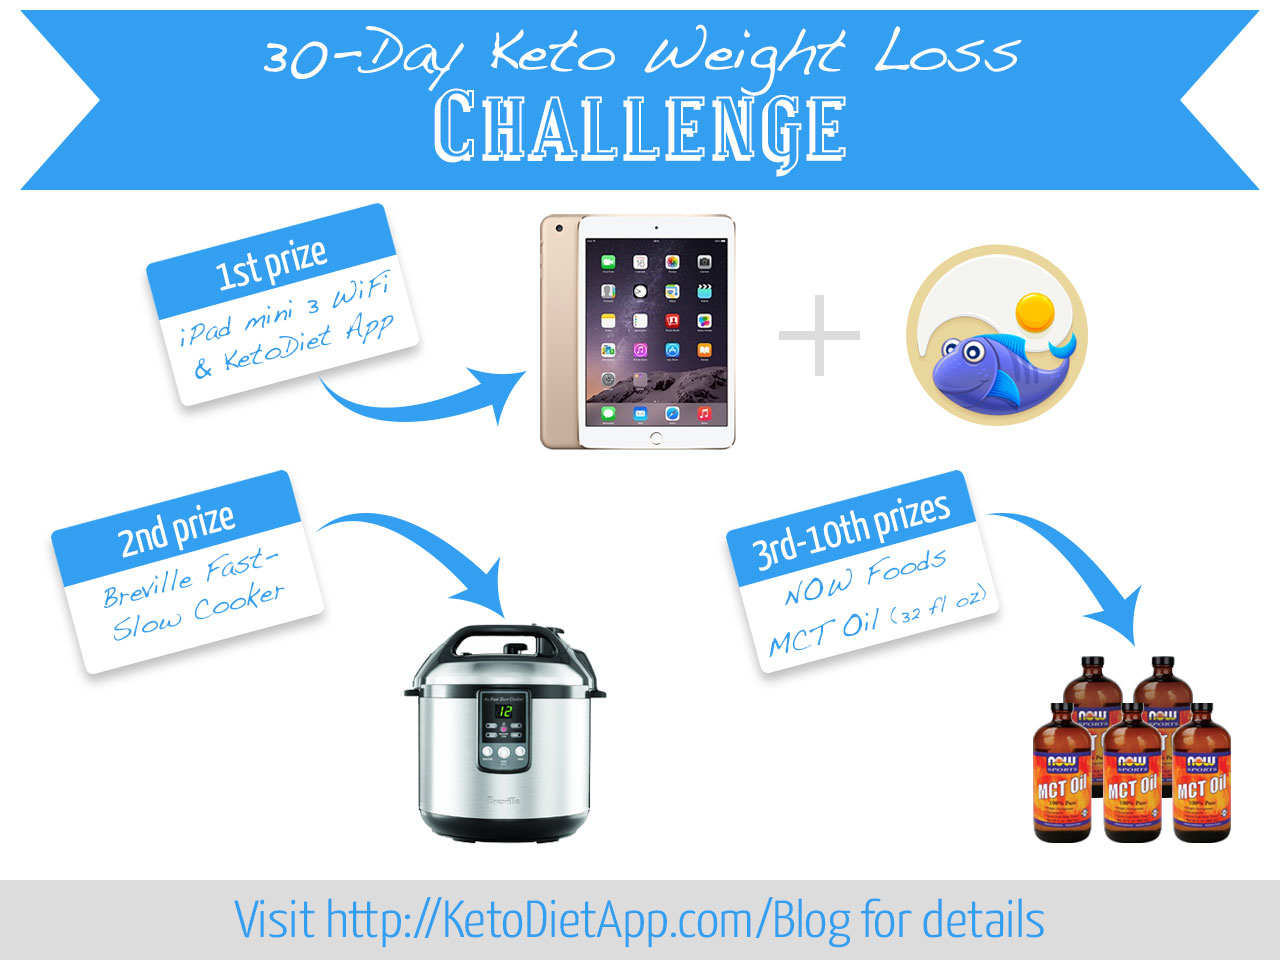 Results Of The 30 Day Keto Weight Loss Challenge Giveaway